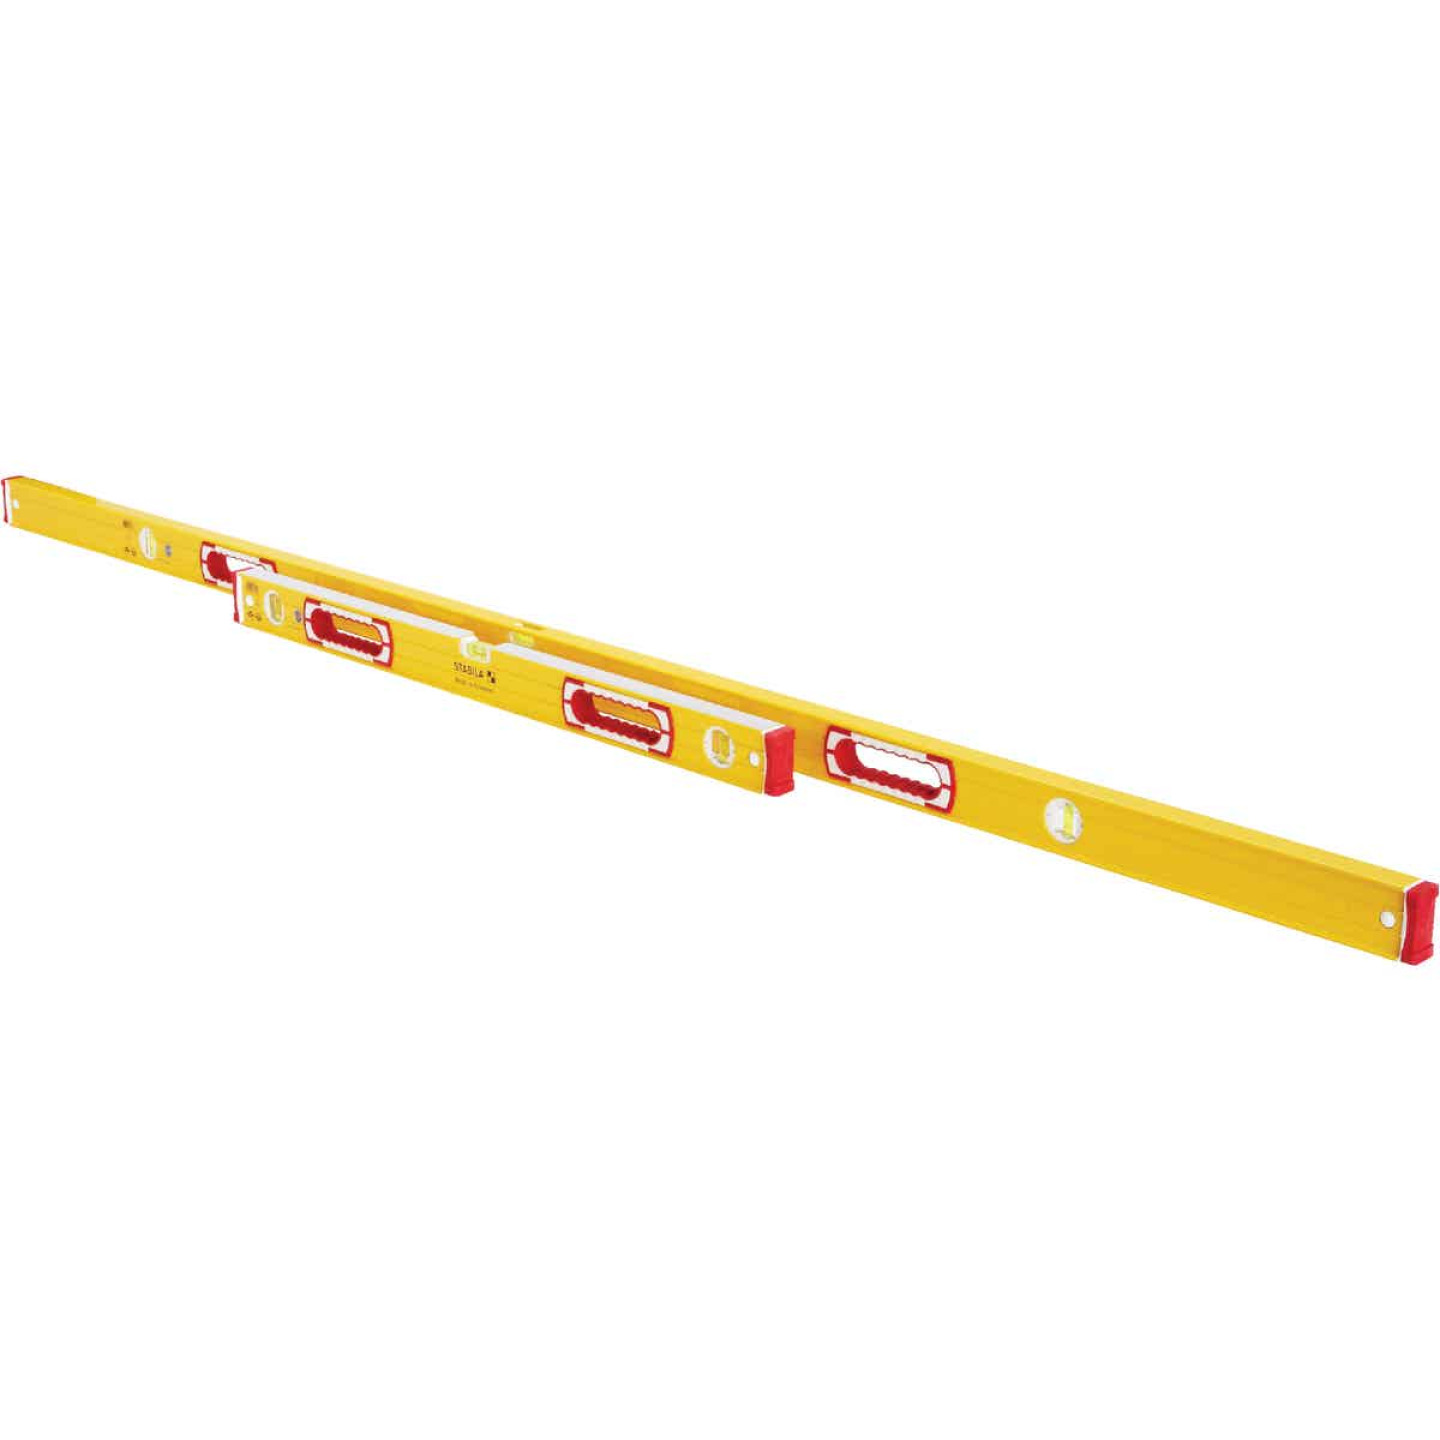 Stabila 78 In. Aluminum Jamber Box Level & 24 to 40 In. Extendable Level Set Image 3